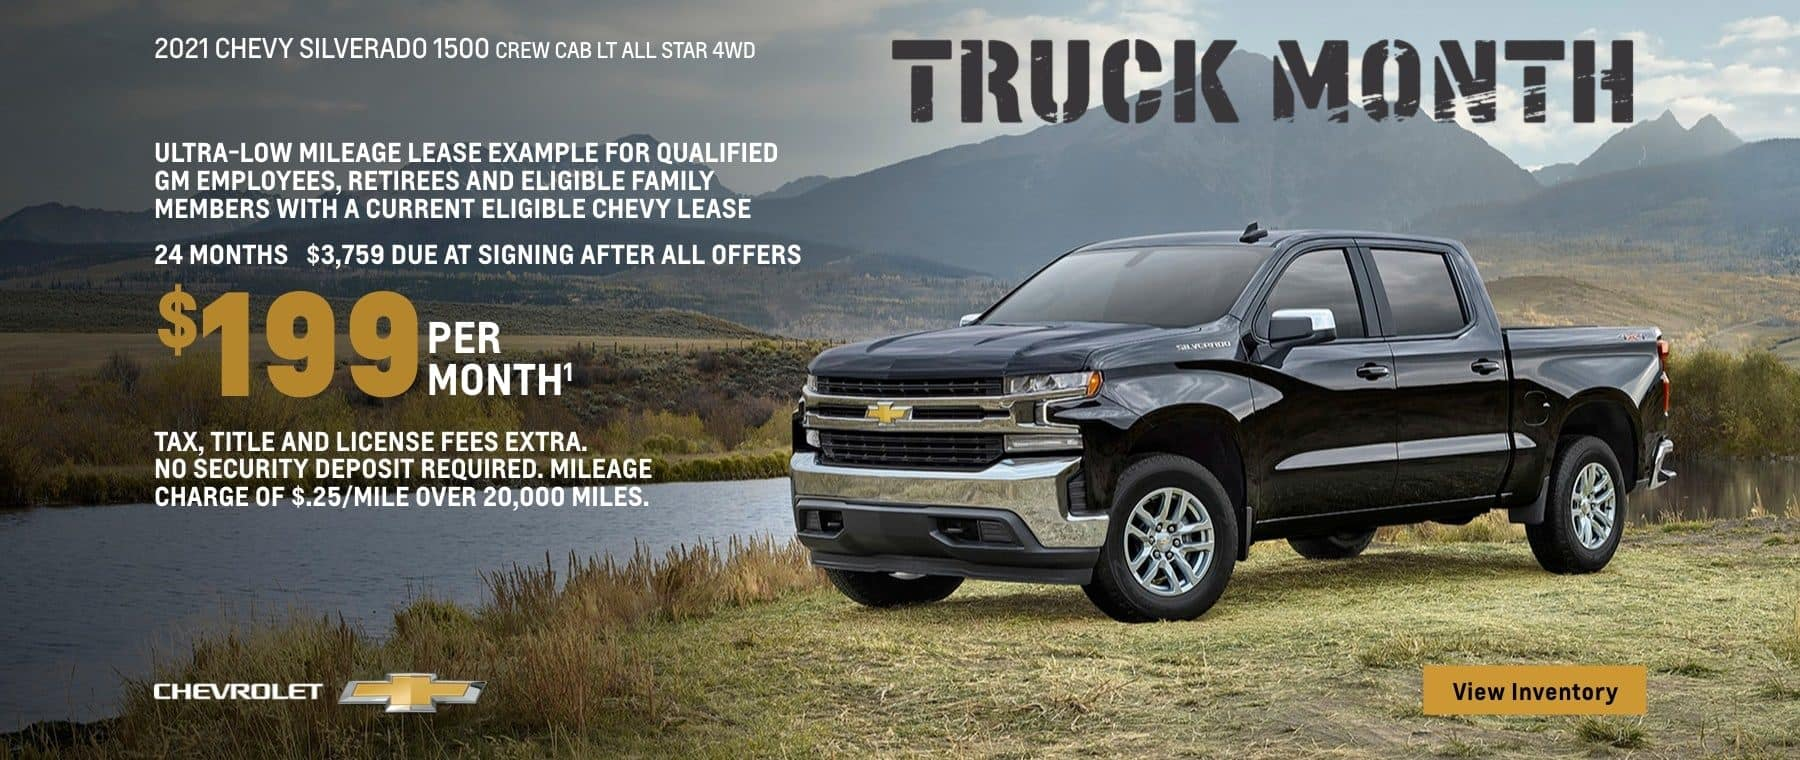 2021 Chevy Silverado 1500 Crew Cab LT All Star 4WD. Make it your own. Truck Month. Ultra-low mileage lease example for qualified GM employees, retirees, and eligible family members with a current eligible lease. $199 per month. 24 months. $3,759 due at signing after all offers. Take, title and license fees extra. No security deposit required. Mileage charge of $.25/mile over 20,000.